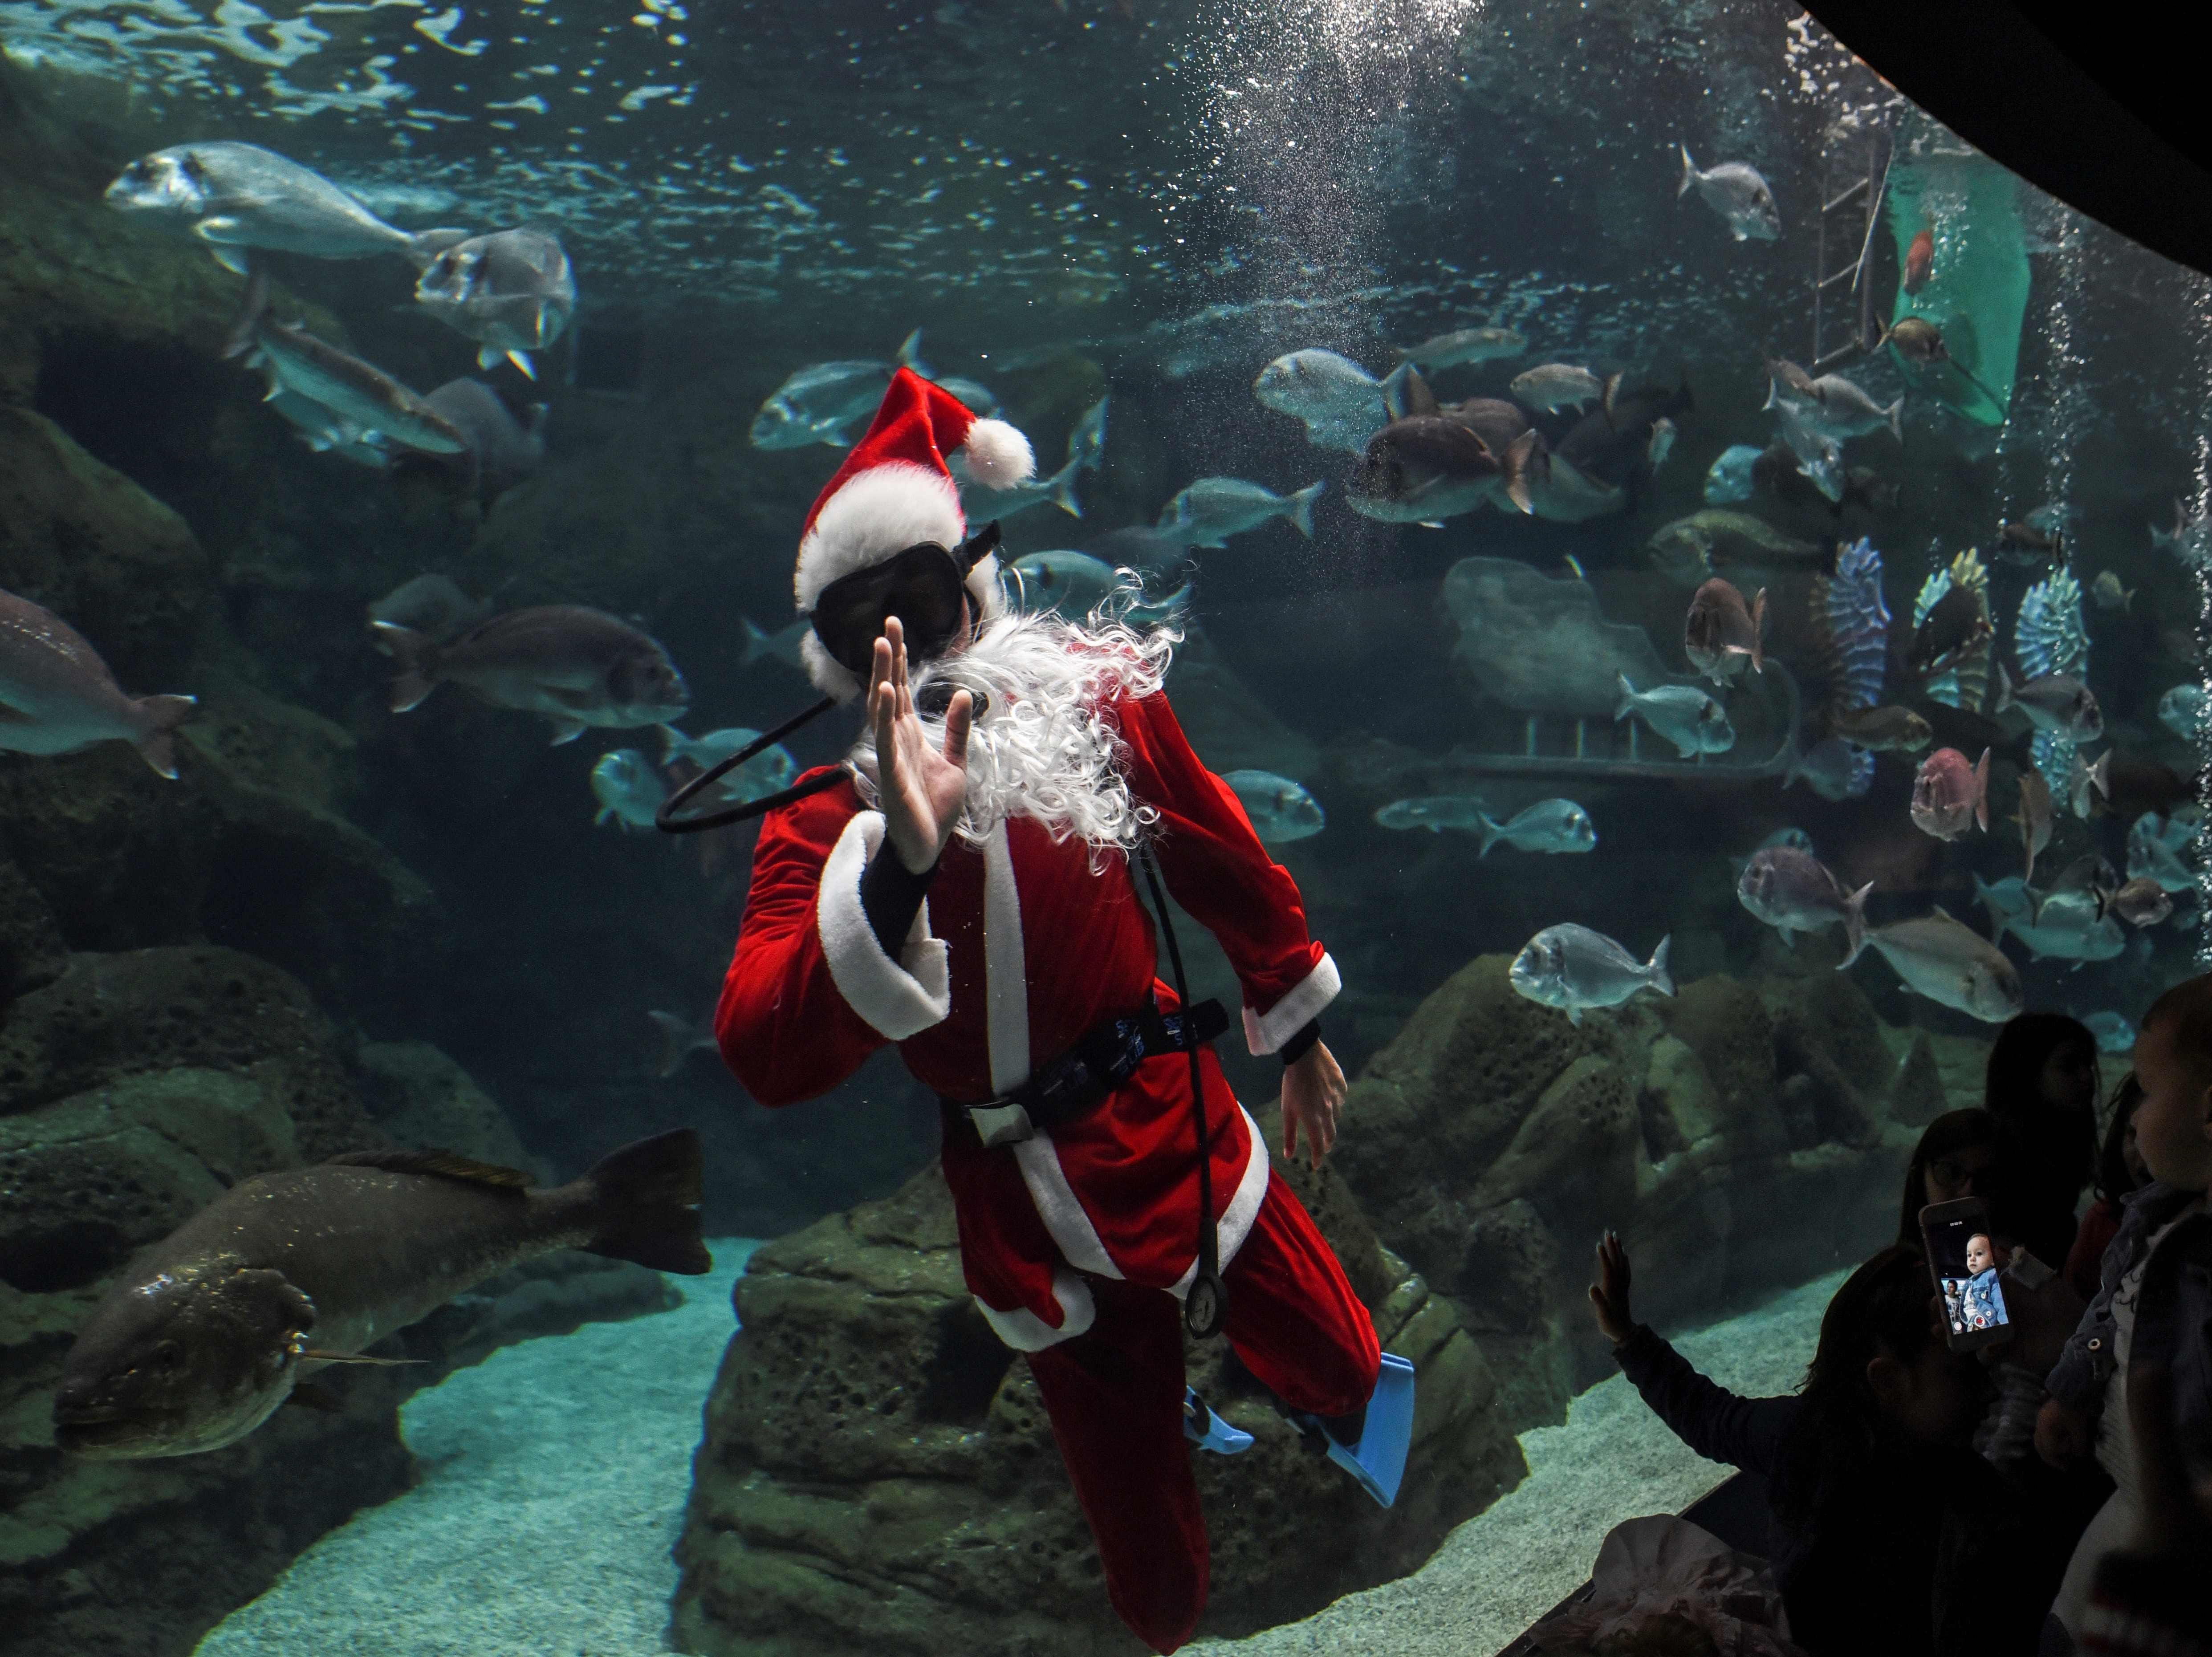 A child greets a diver dressed as Santa Claus at the Creta Aquarium in the city of Heraklion, on the Greek island of Crete, on Dec. 15, 2018.